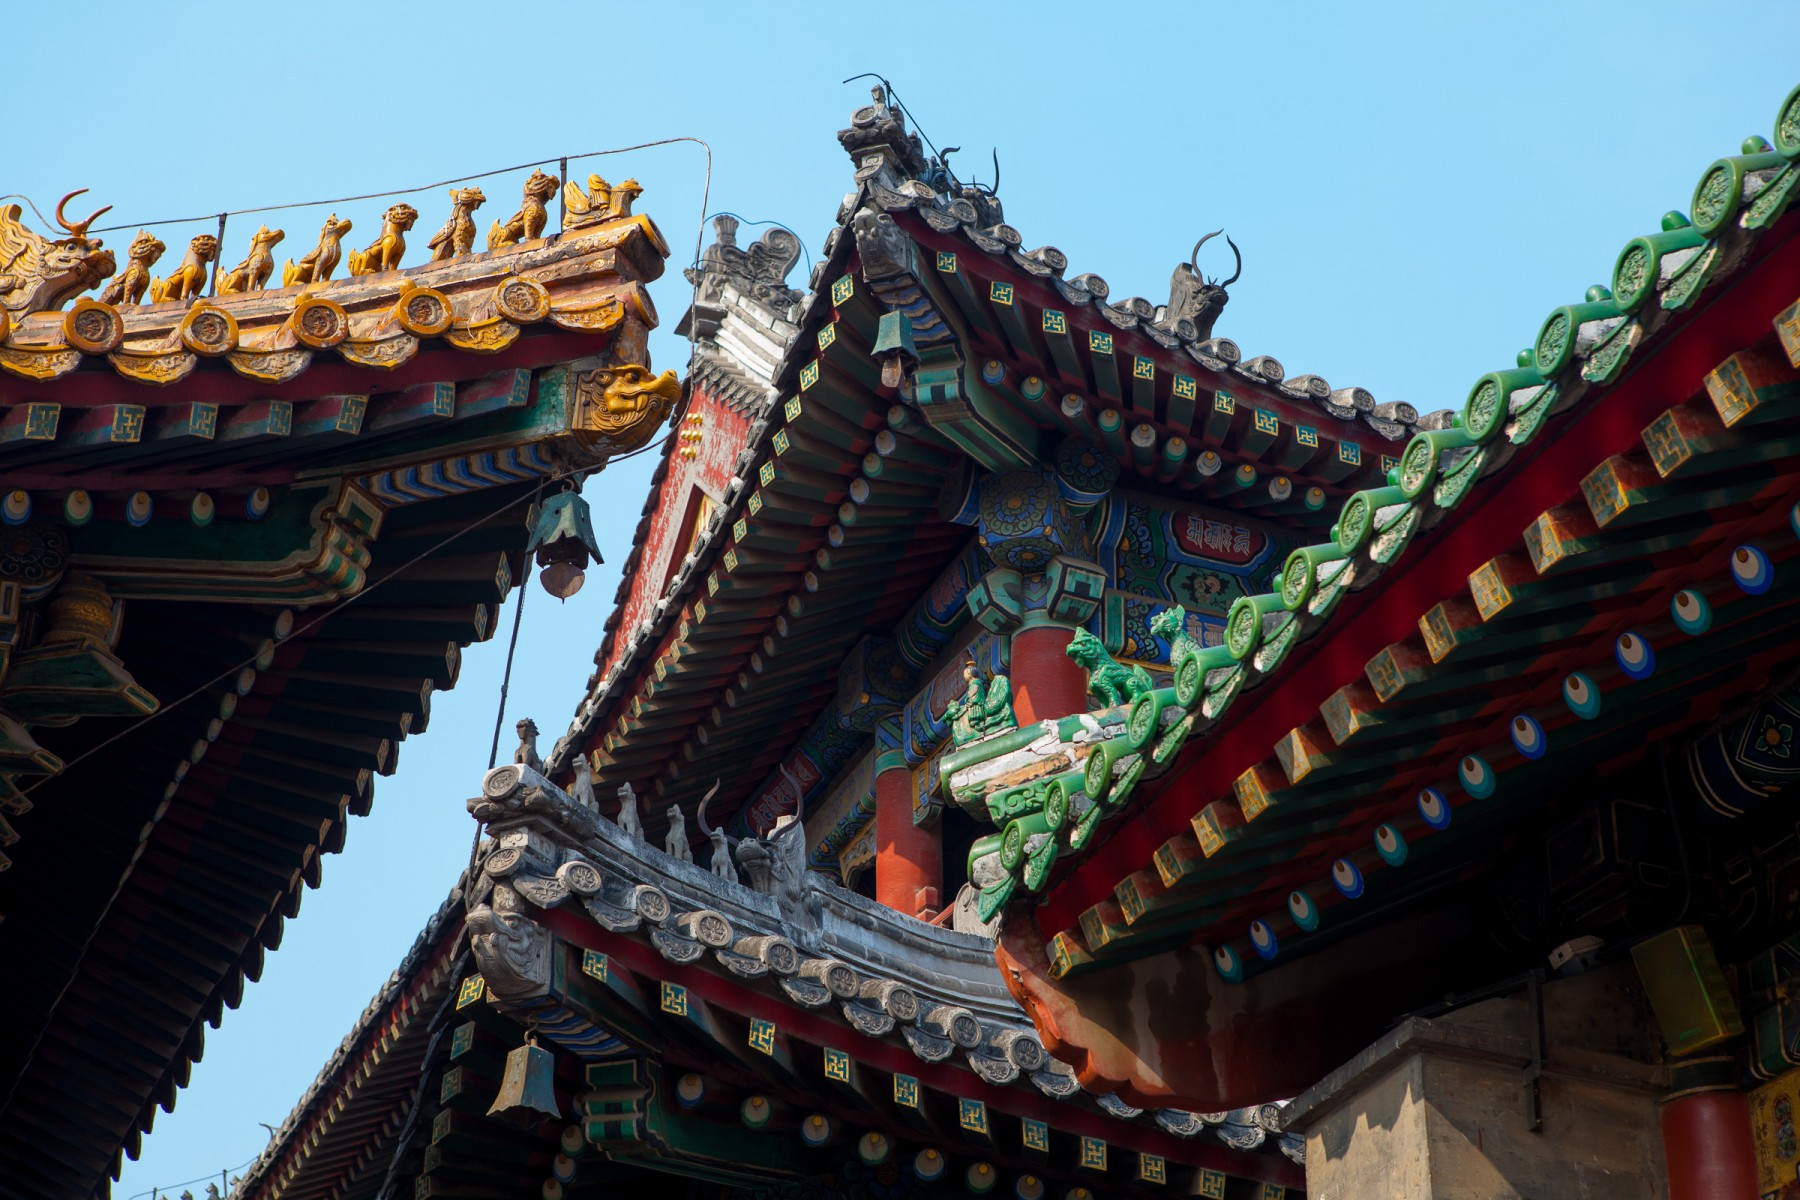 Roof awnings on the Llama monastery in Beijing, China.